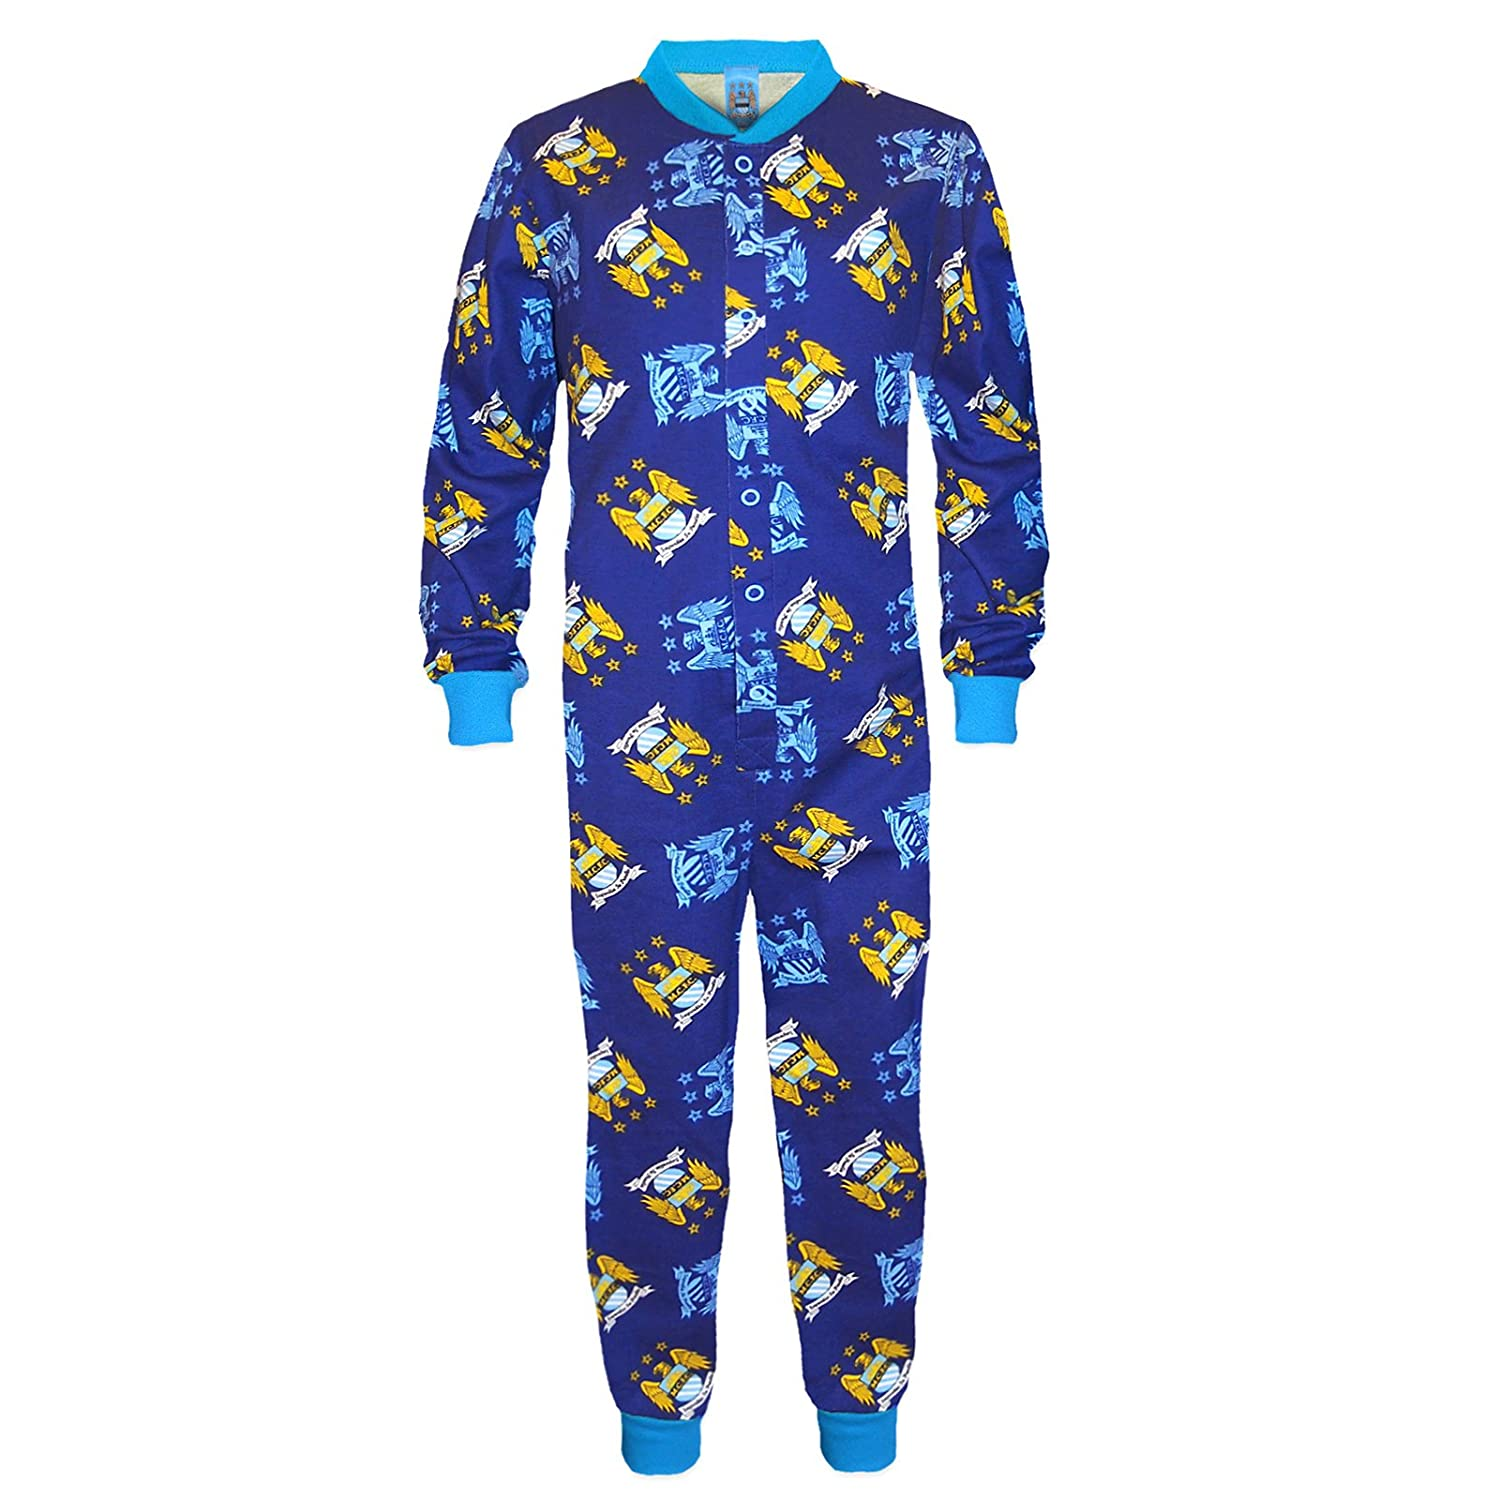 7fa2a04f Manchester City FC Official Football Gift Boys Kids Pyjama All-in-One:  Amazon.co.uk: Clothing